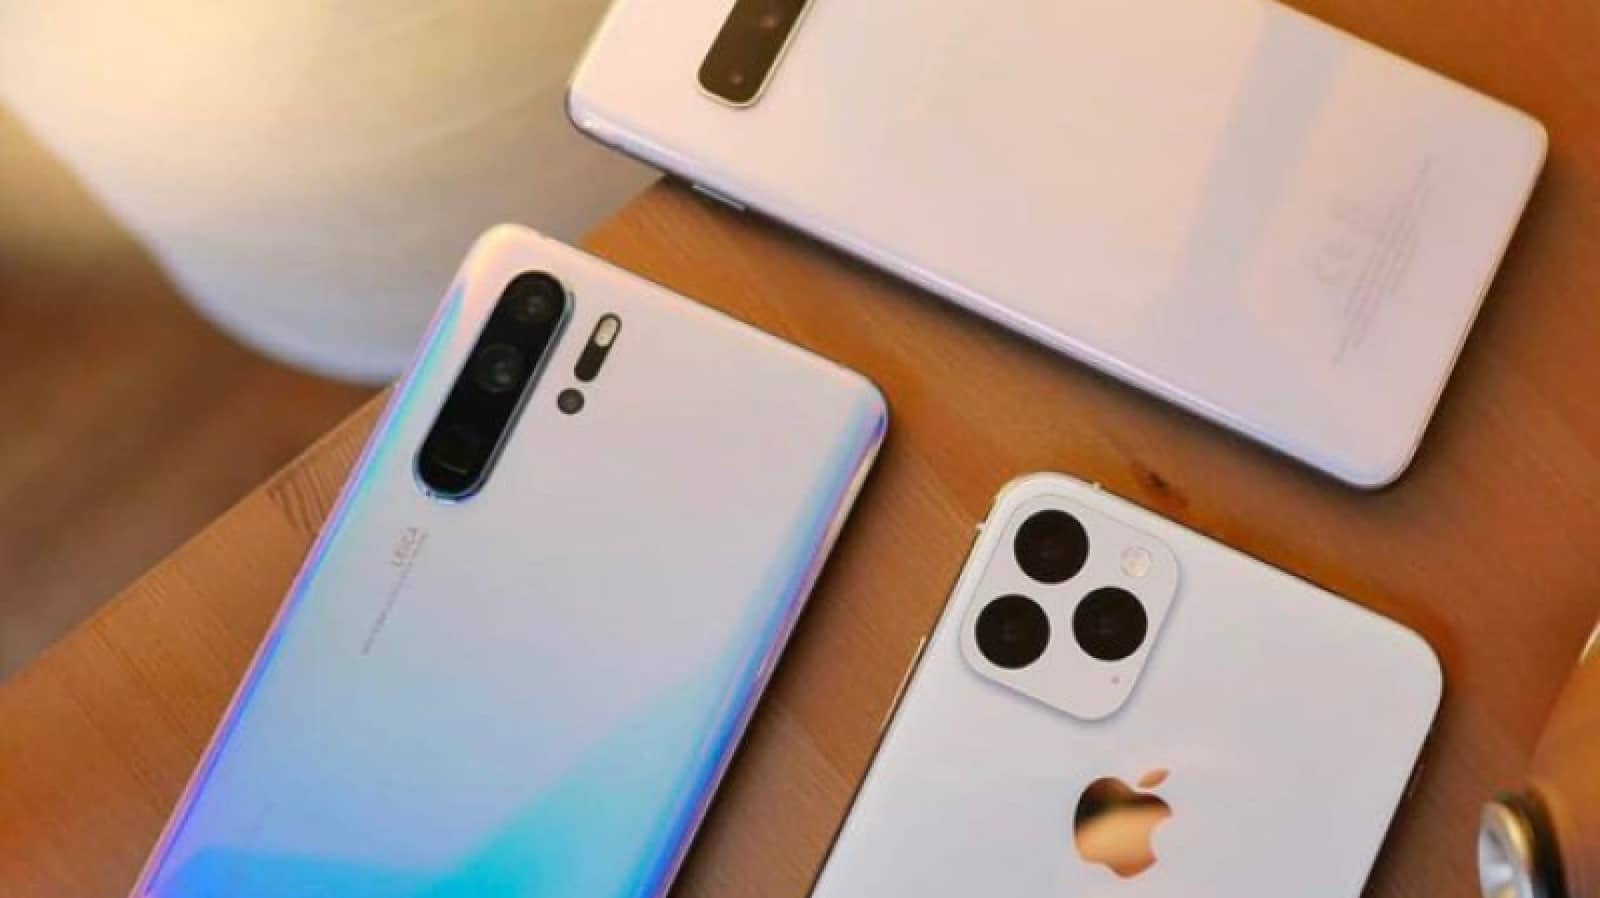 iphone 11 render next to huawei p30 and galaxy note 9